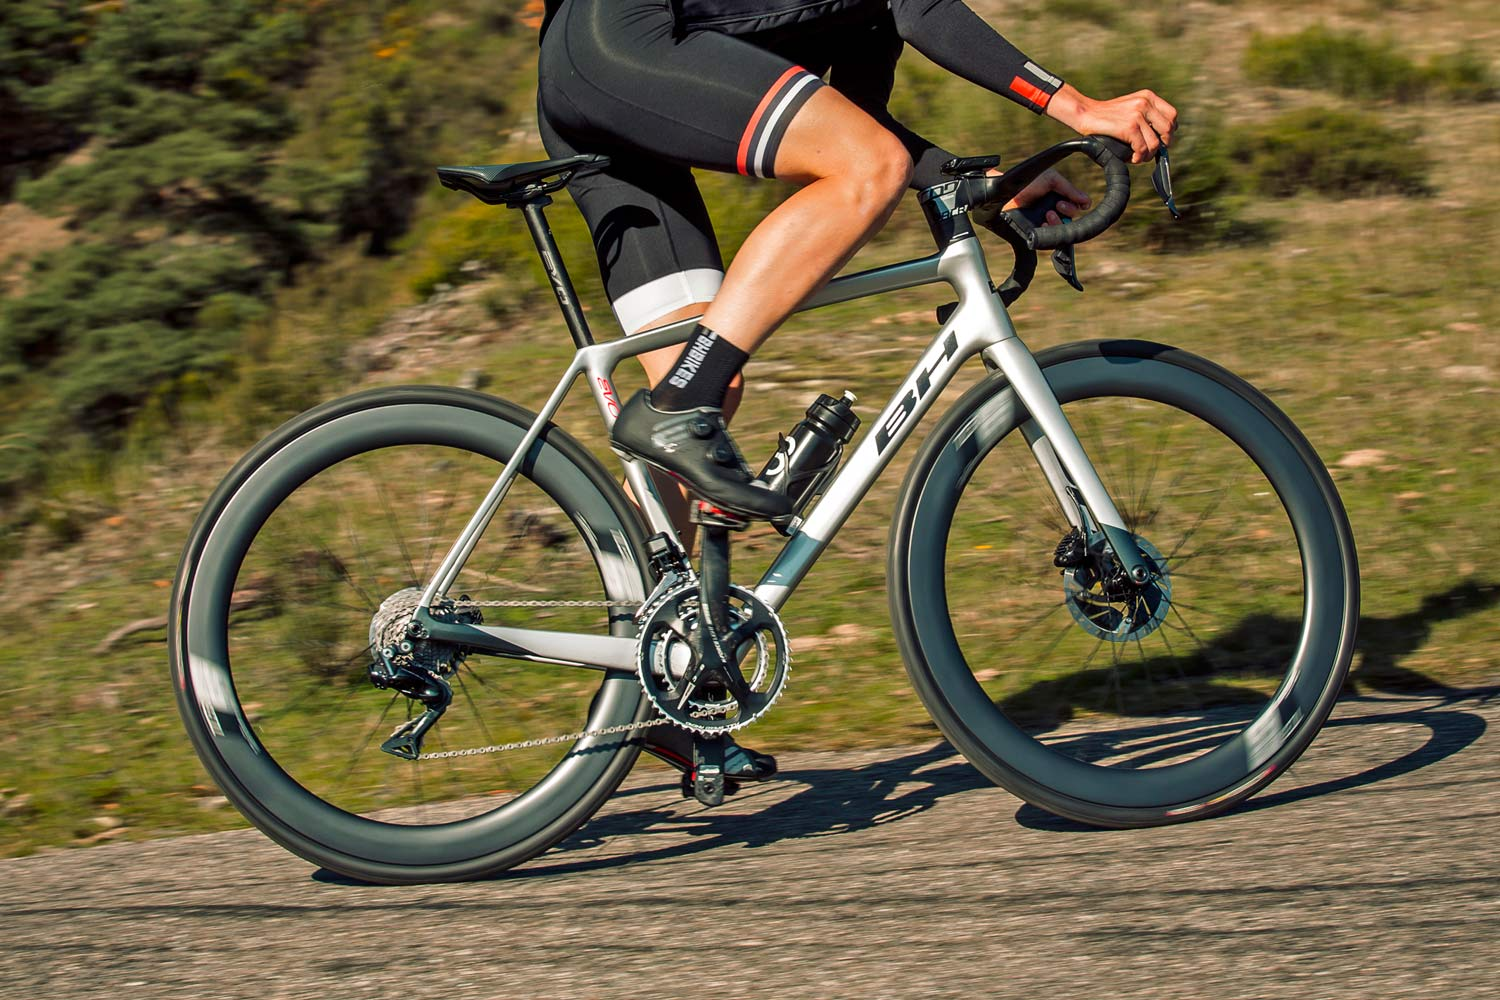 BH Ultralight EVO disc road bike drops to just 750g, goes fully integrated from tip to tail